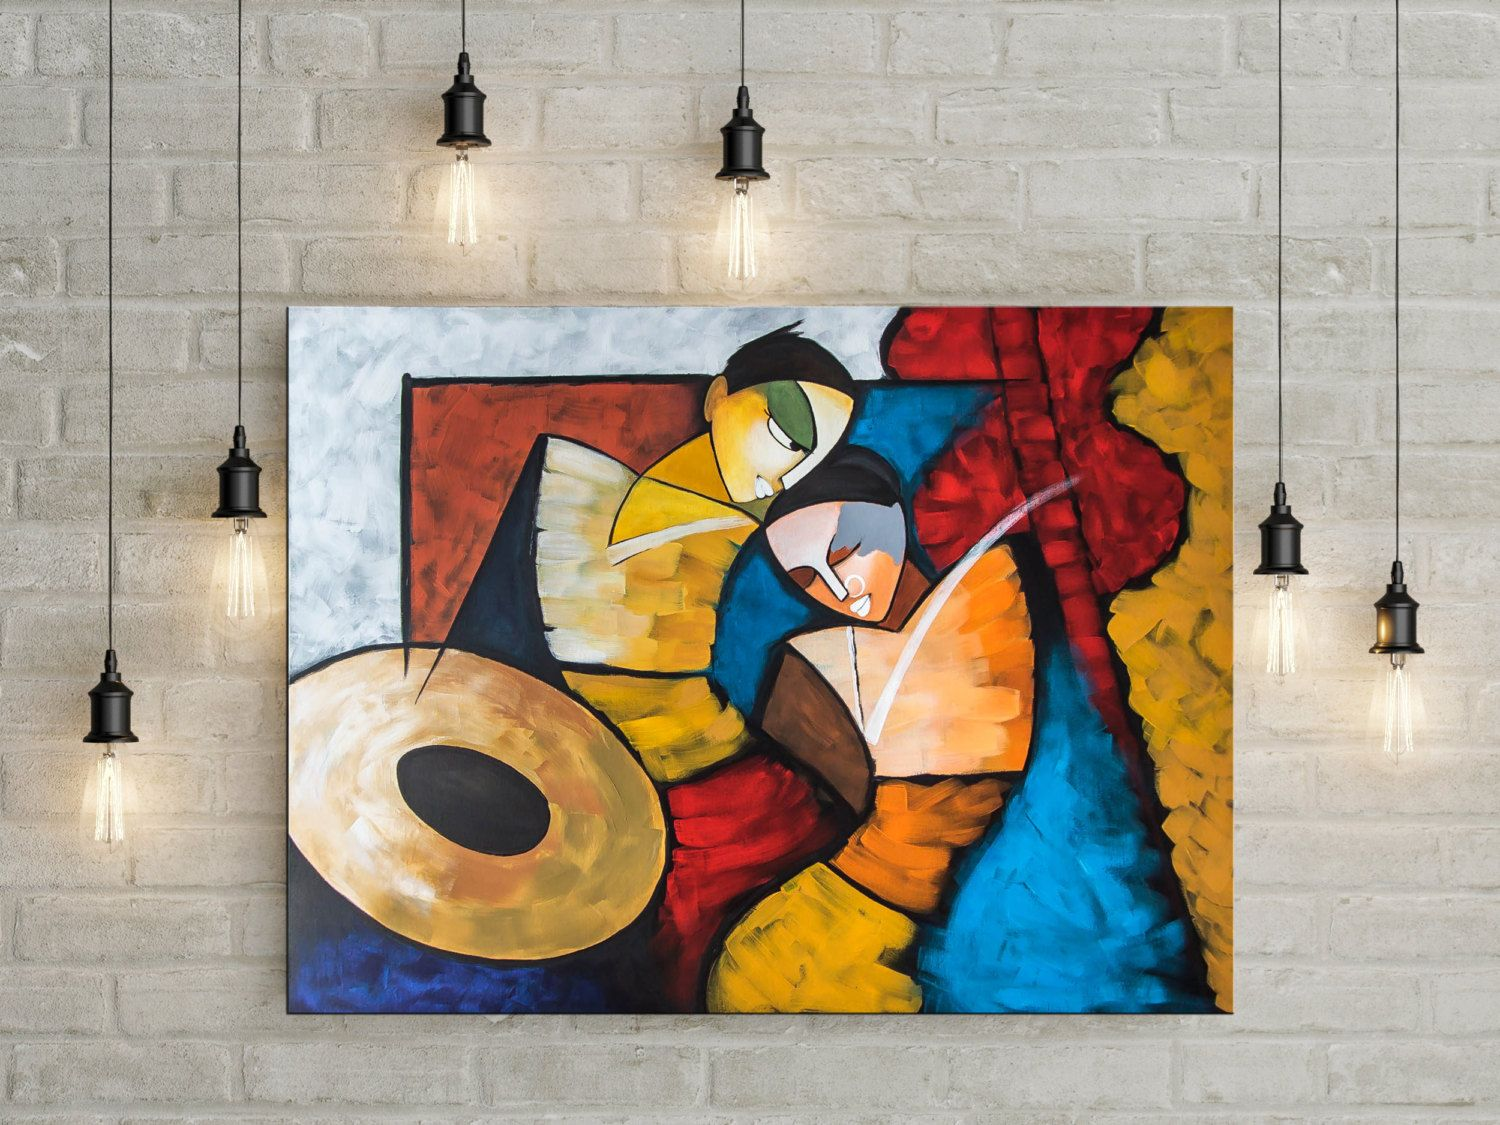 Indian Contemporary Art, Modern Painting, Radha Krishna, Couple ... for Abstract Painting Of Indian Dancers  113cpg